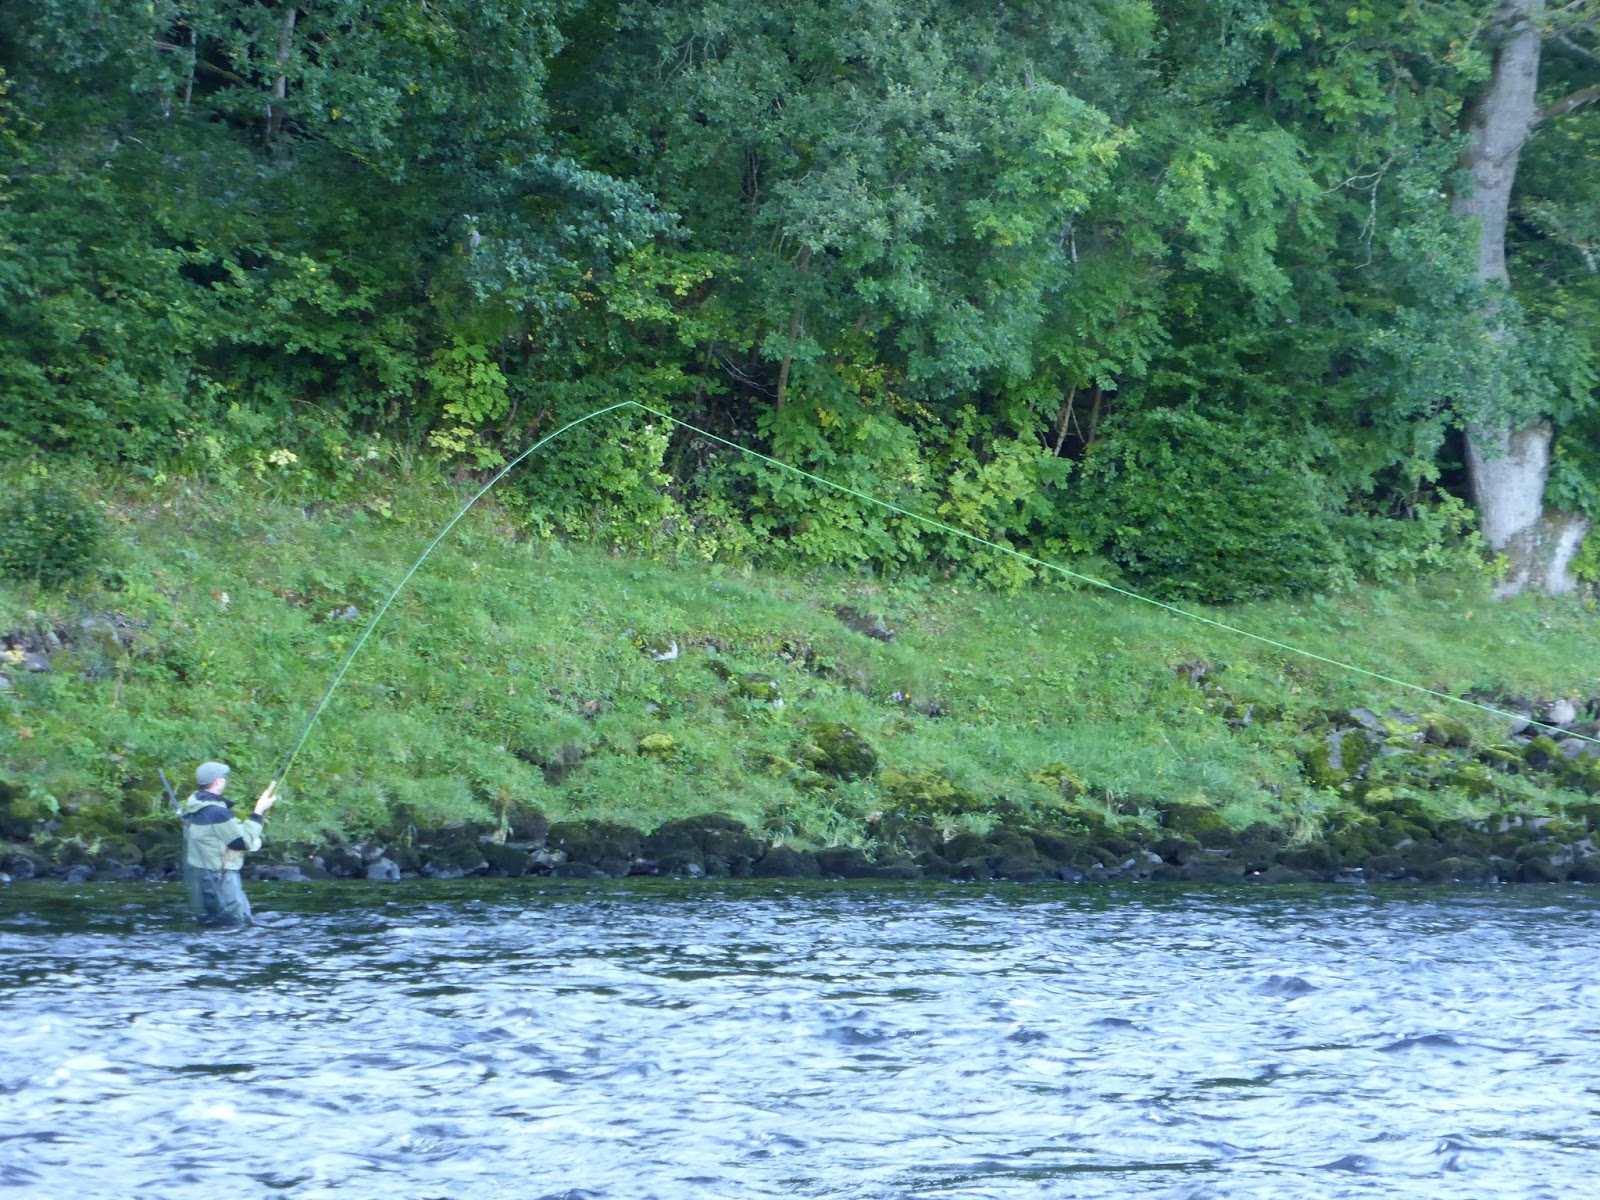 salmon fishing scotland.: salmon fishing scotland autumn fly, Fly Fishing Bait